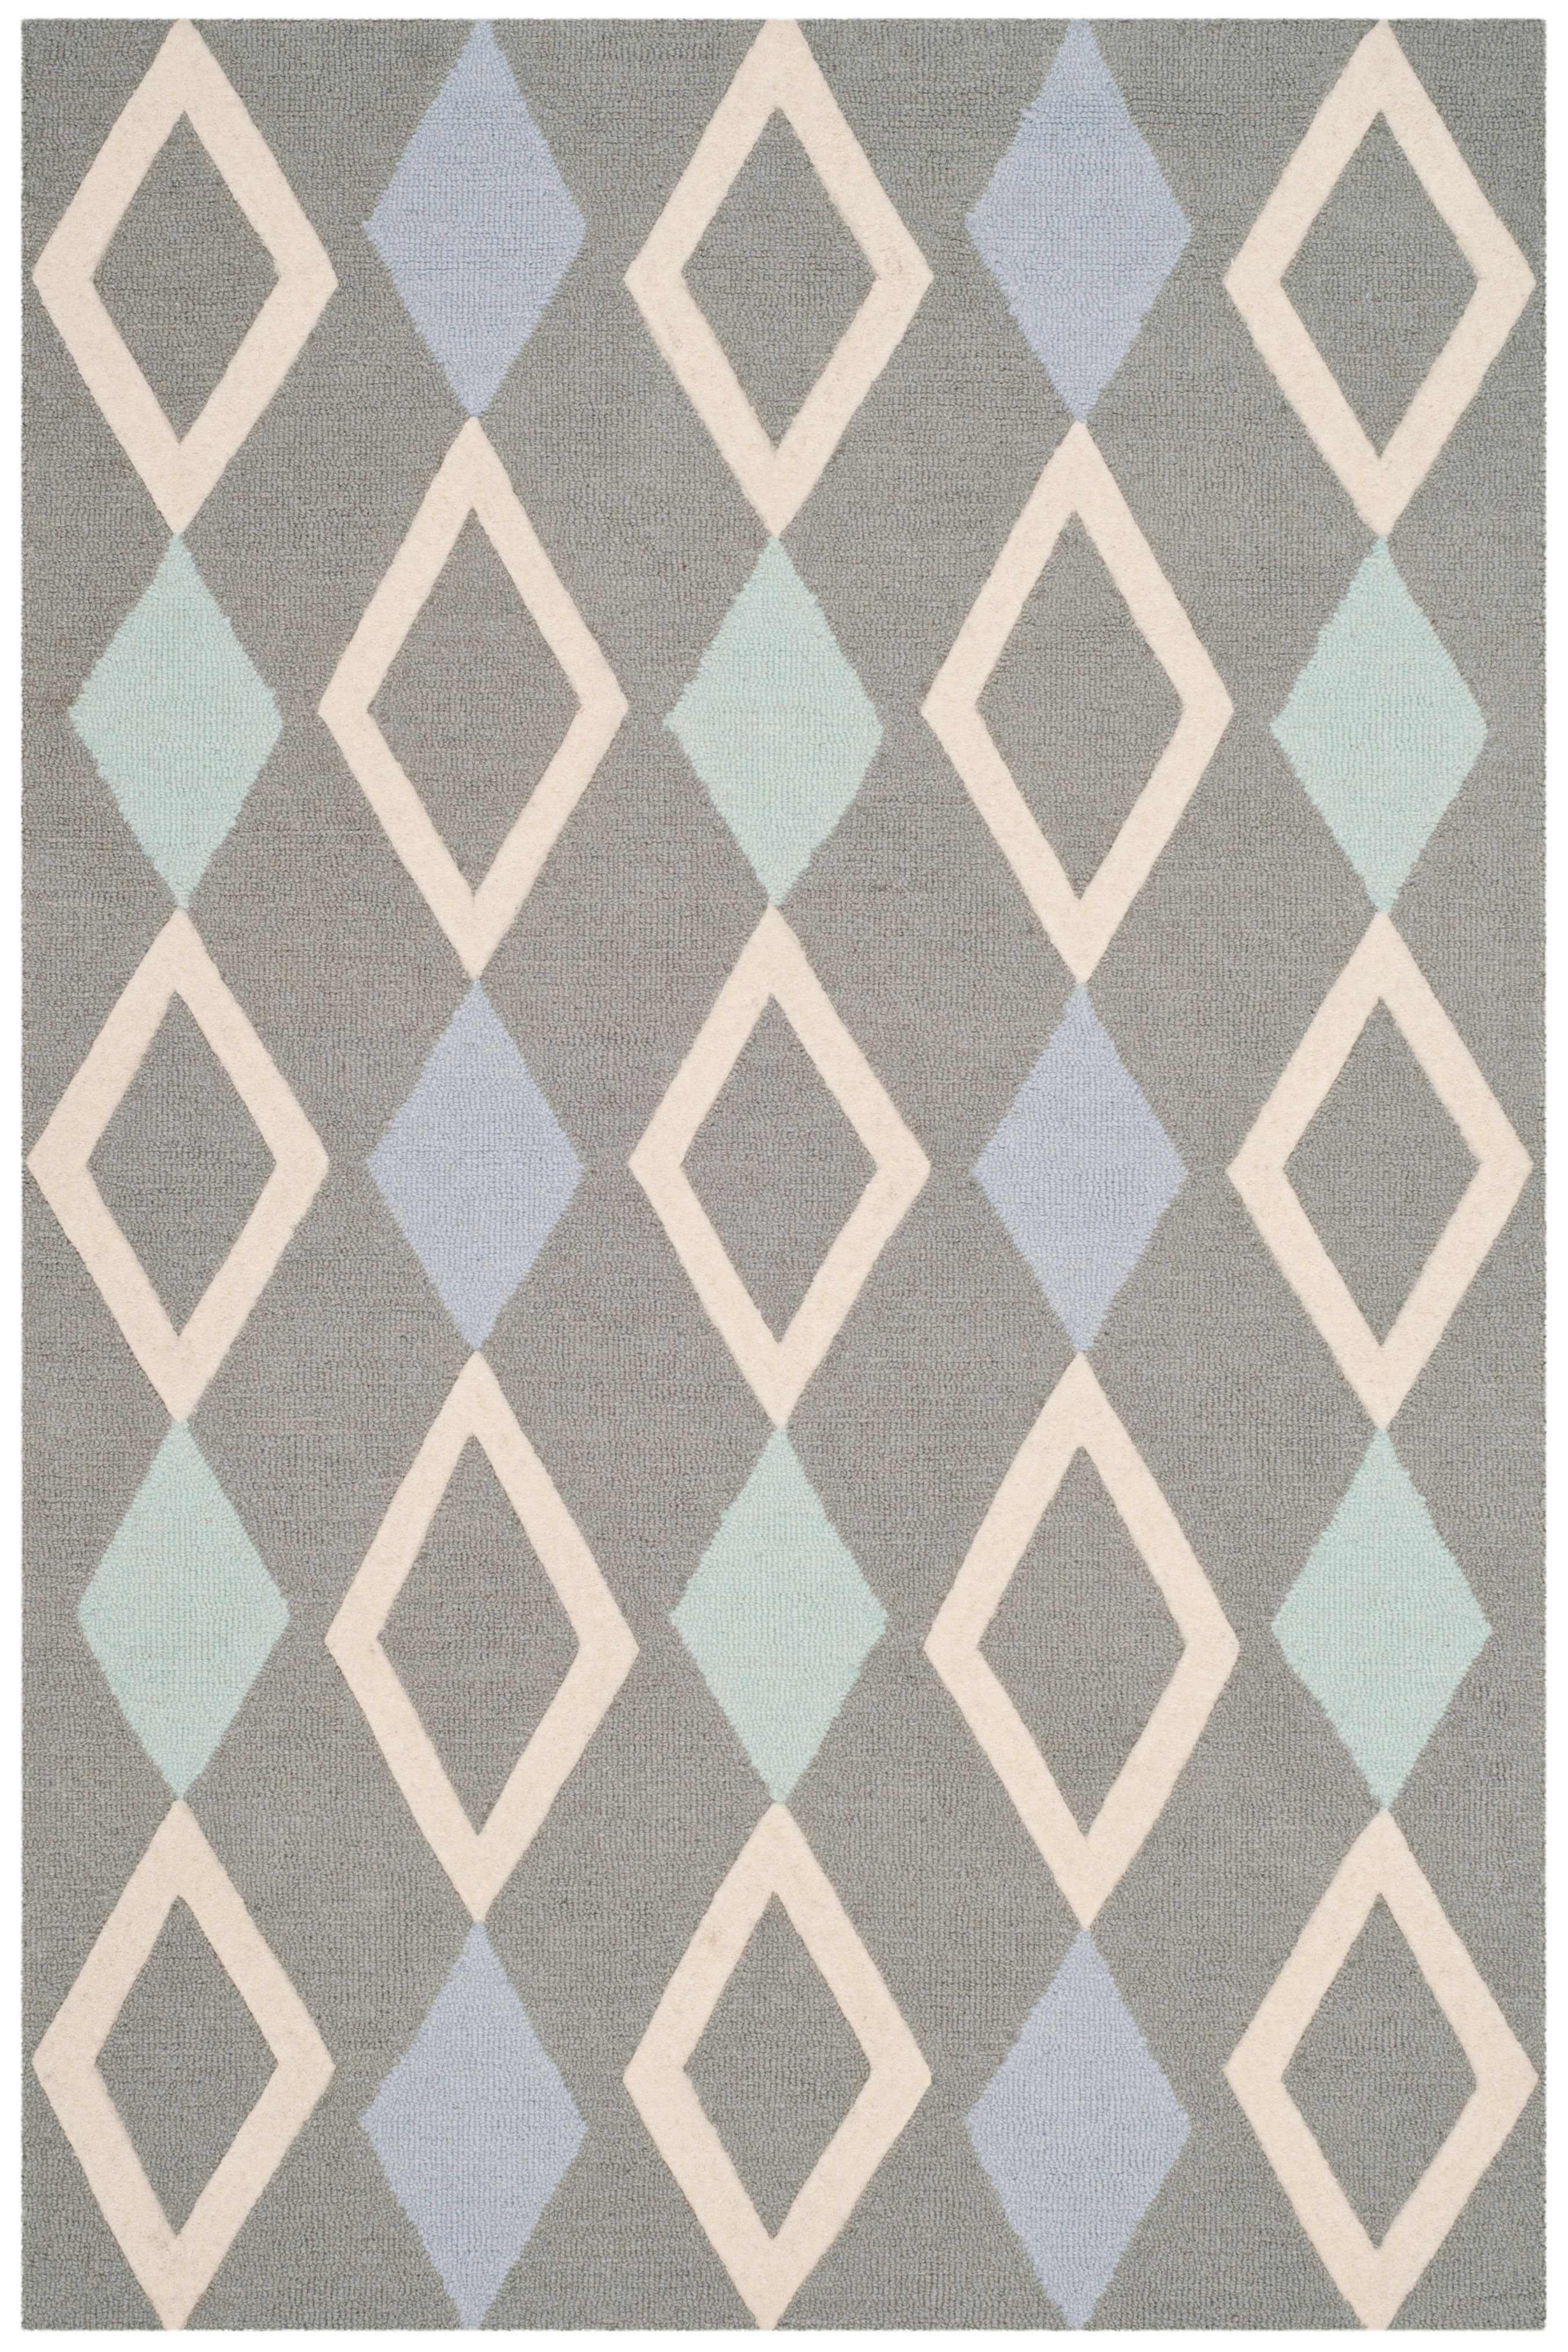 Rugs For Kids Safavieh 3 X 5 Rug Gray Products Kids Area Rugs Hand